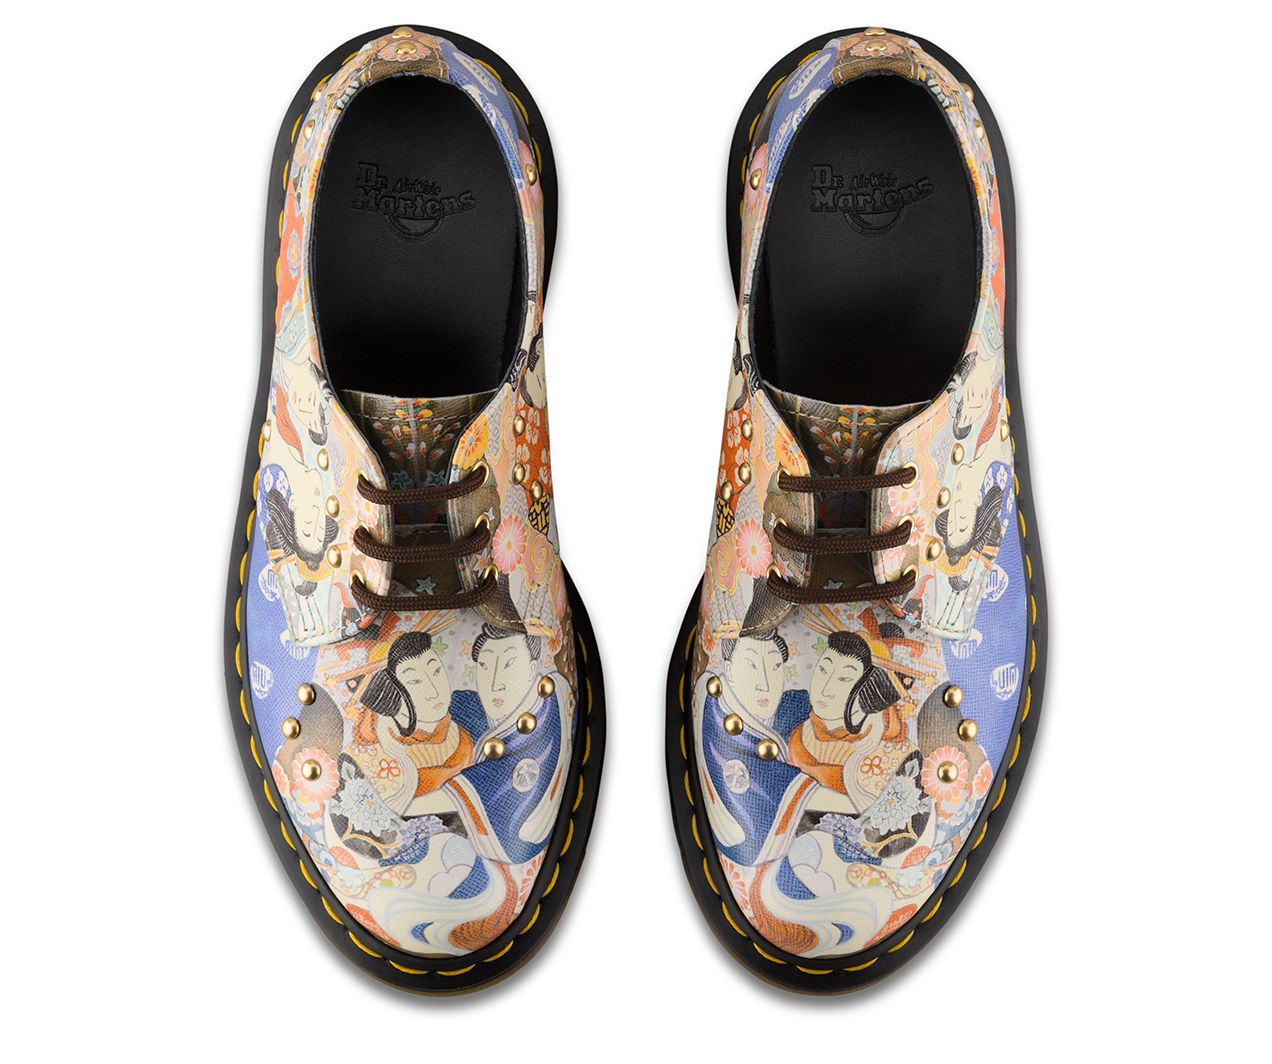 8fe487fb50a This 1461 3-eye shoe pays homage to traditional Japanese art with a fresh